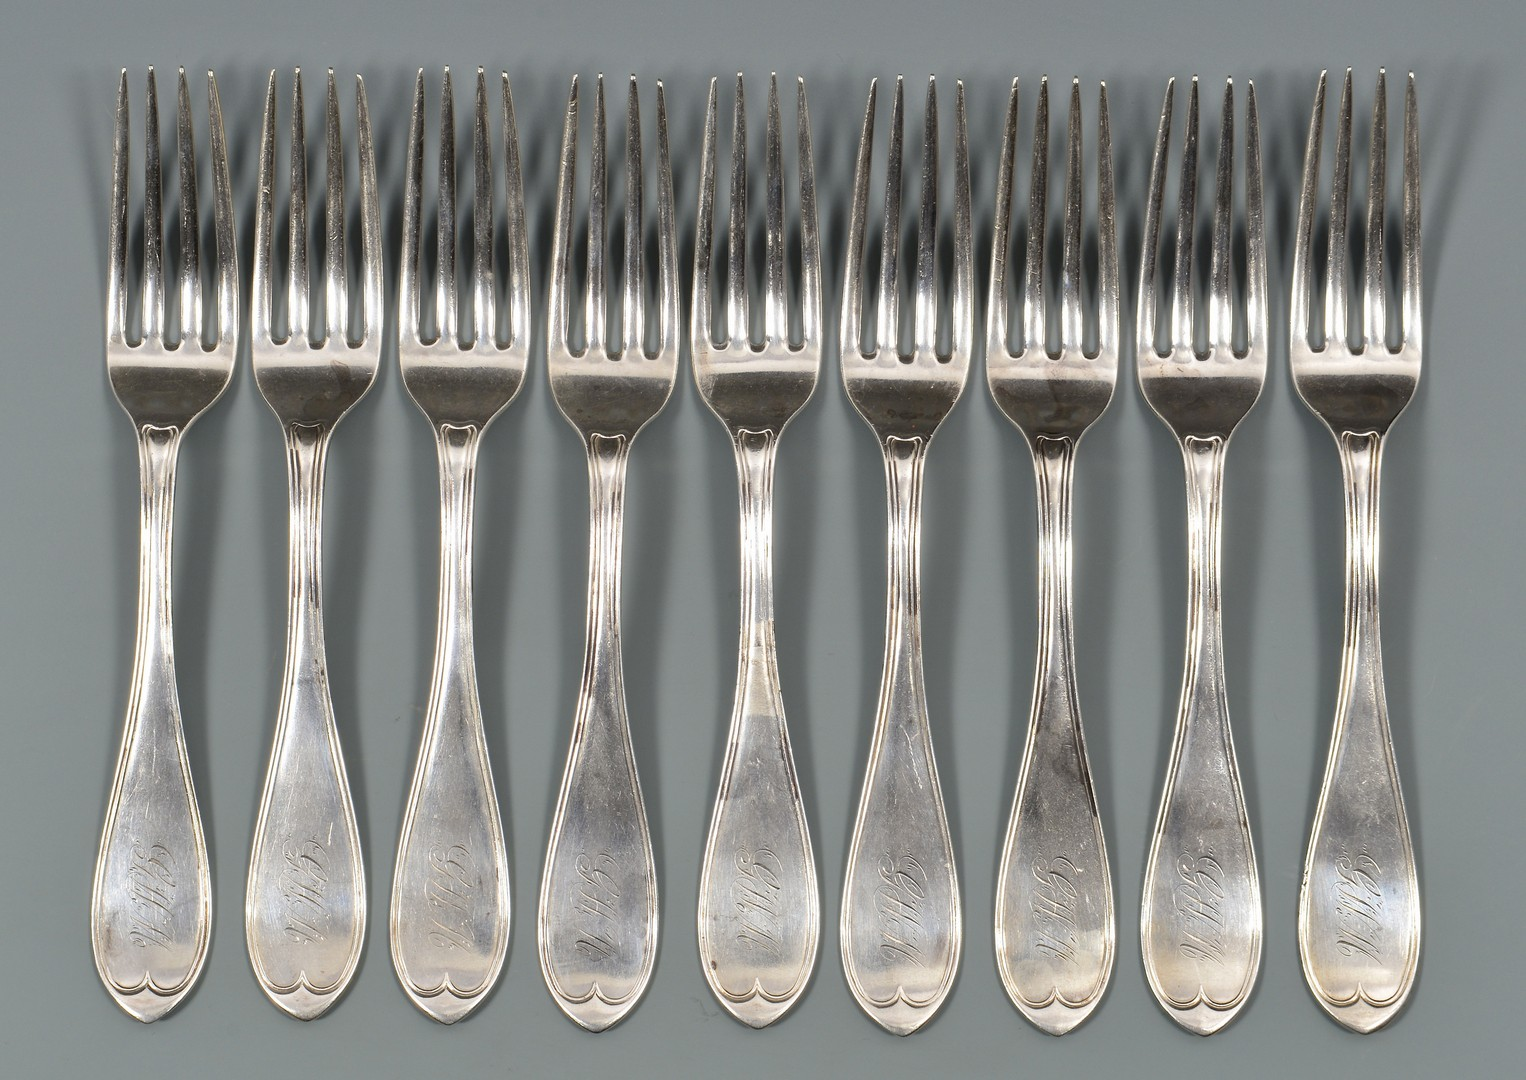 Lot 136: 15 Memphis, Tennessee retailed forks